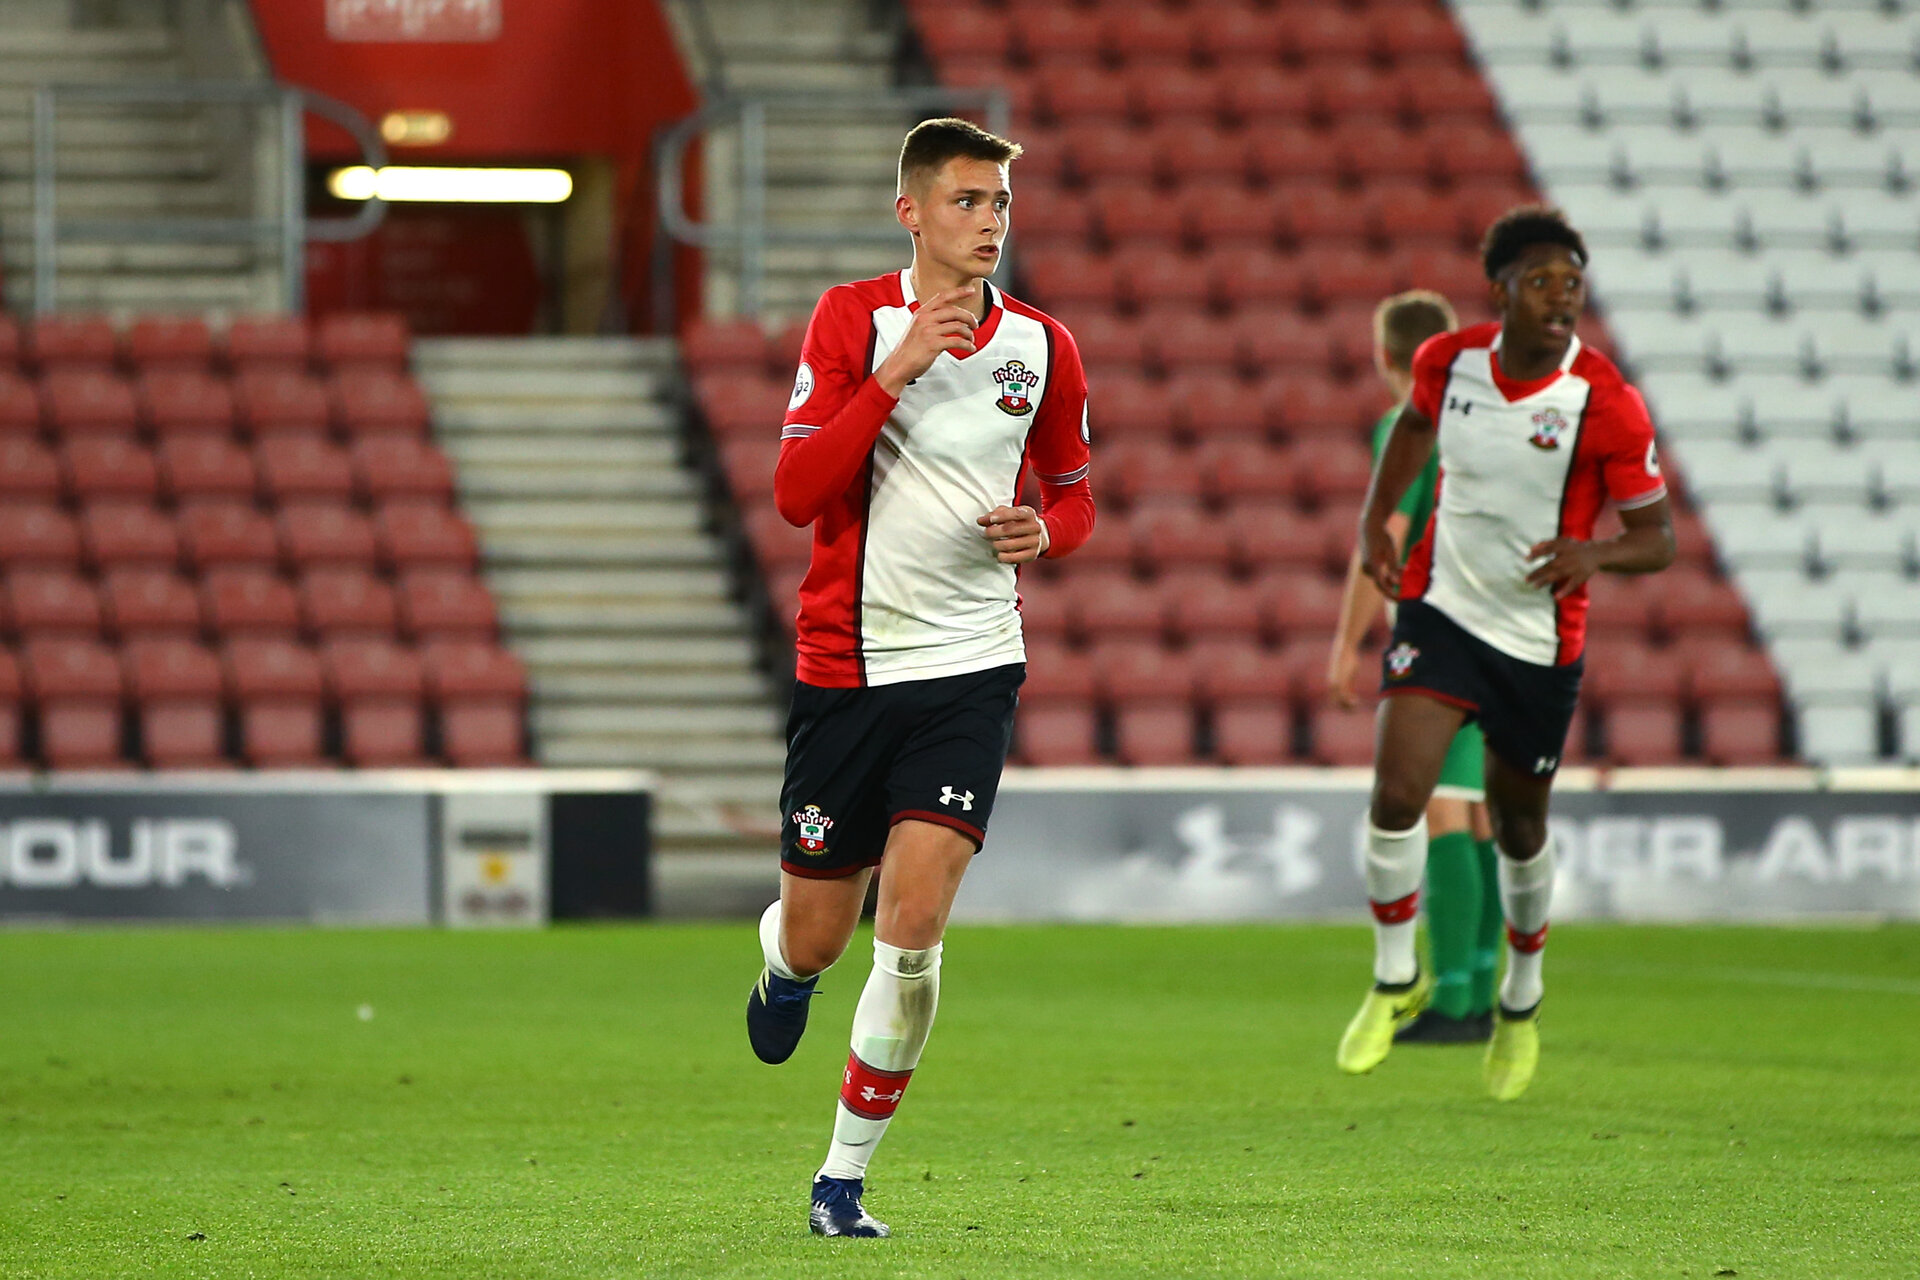 SOUTHAMPTON, ENGLAND - MAY 02: Will Smallbone (middle) scores during the Southampton FC Senior Cup on May 02, 2018 in Southampton, England. (Photo by James Bridle - Southampton FC/Southampton FC via Getty Images)